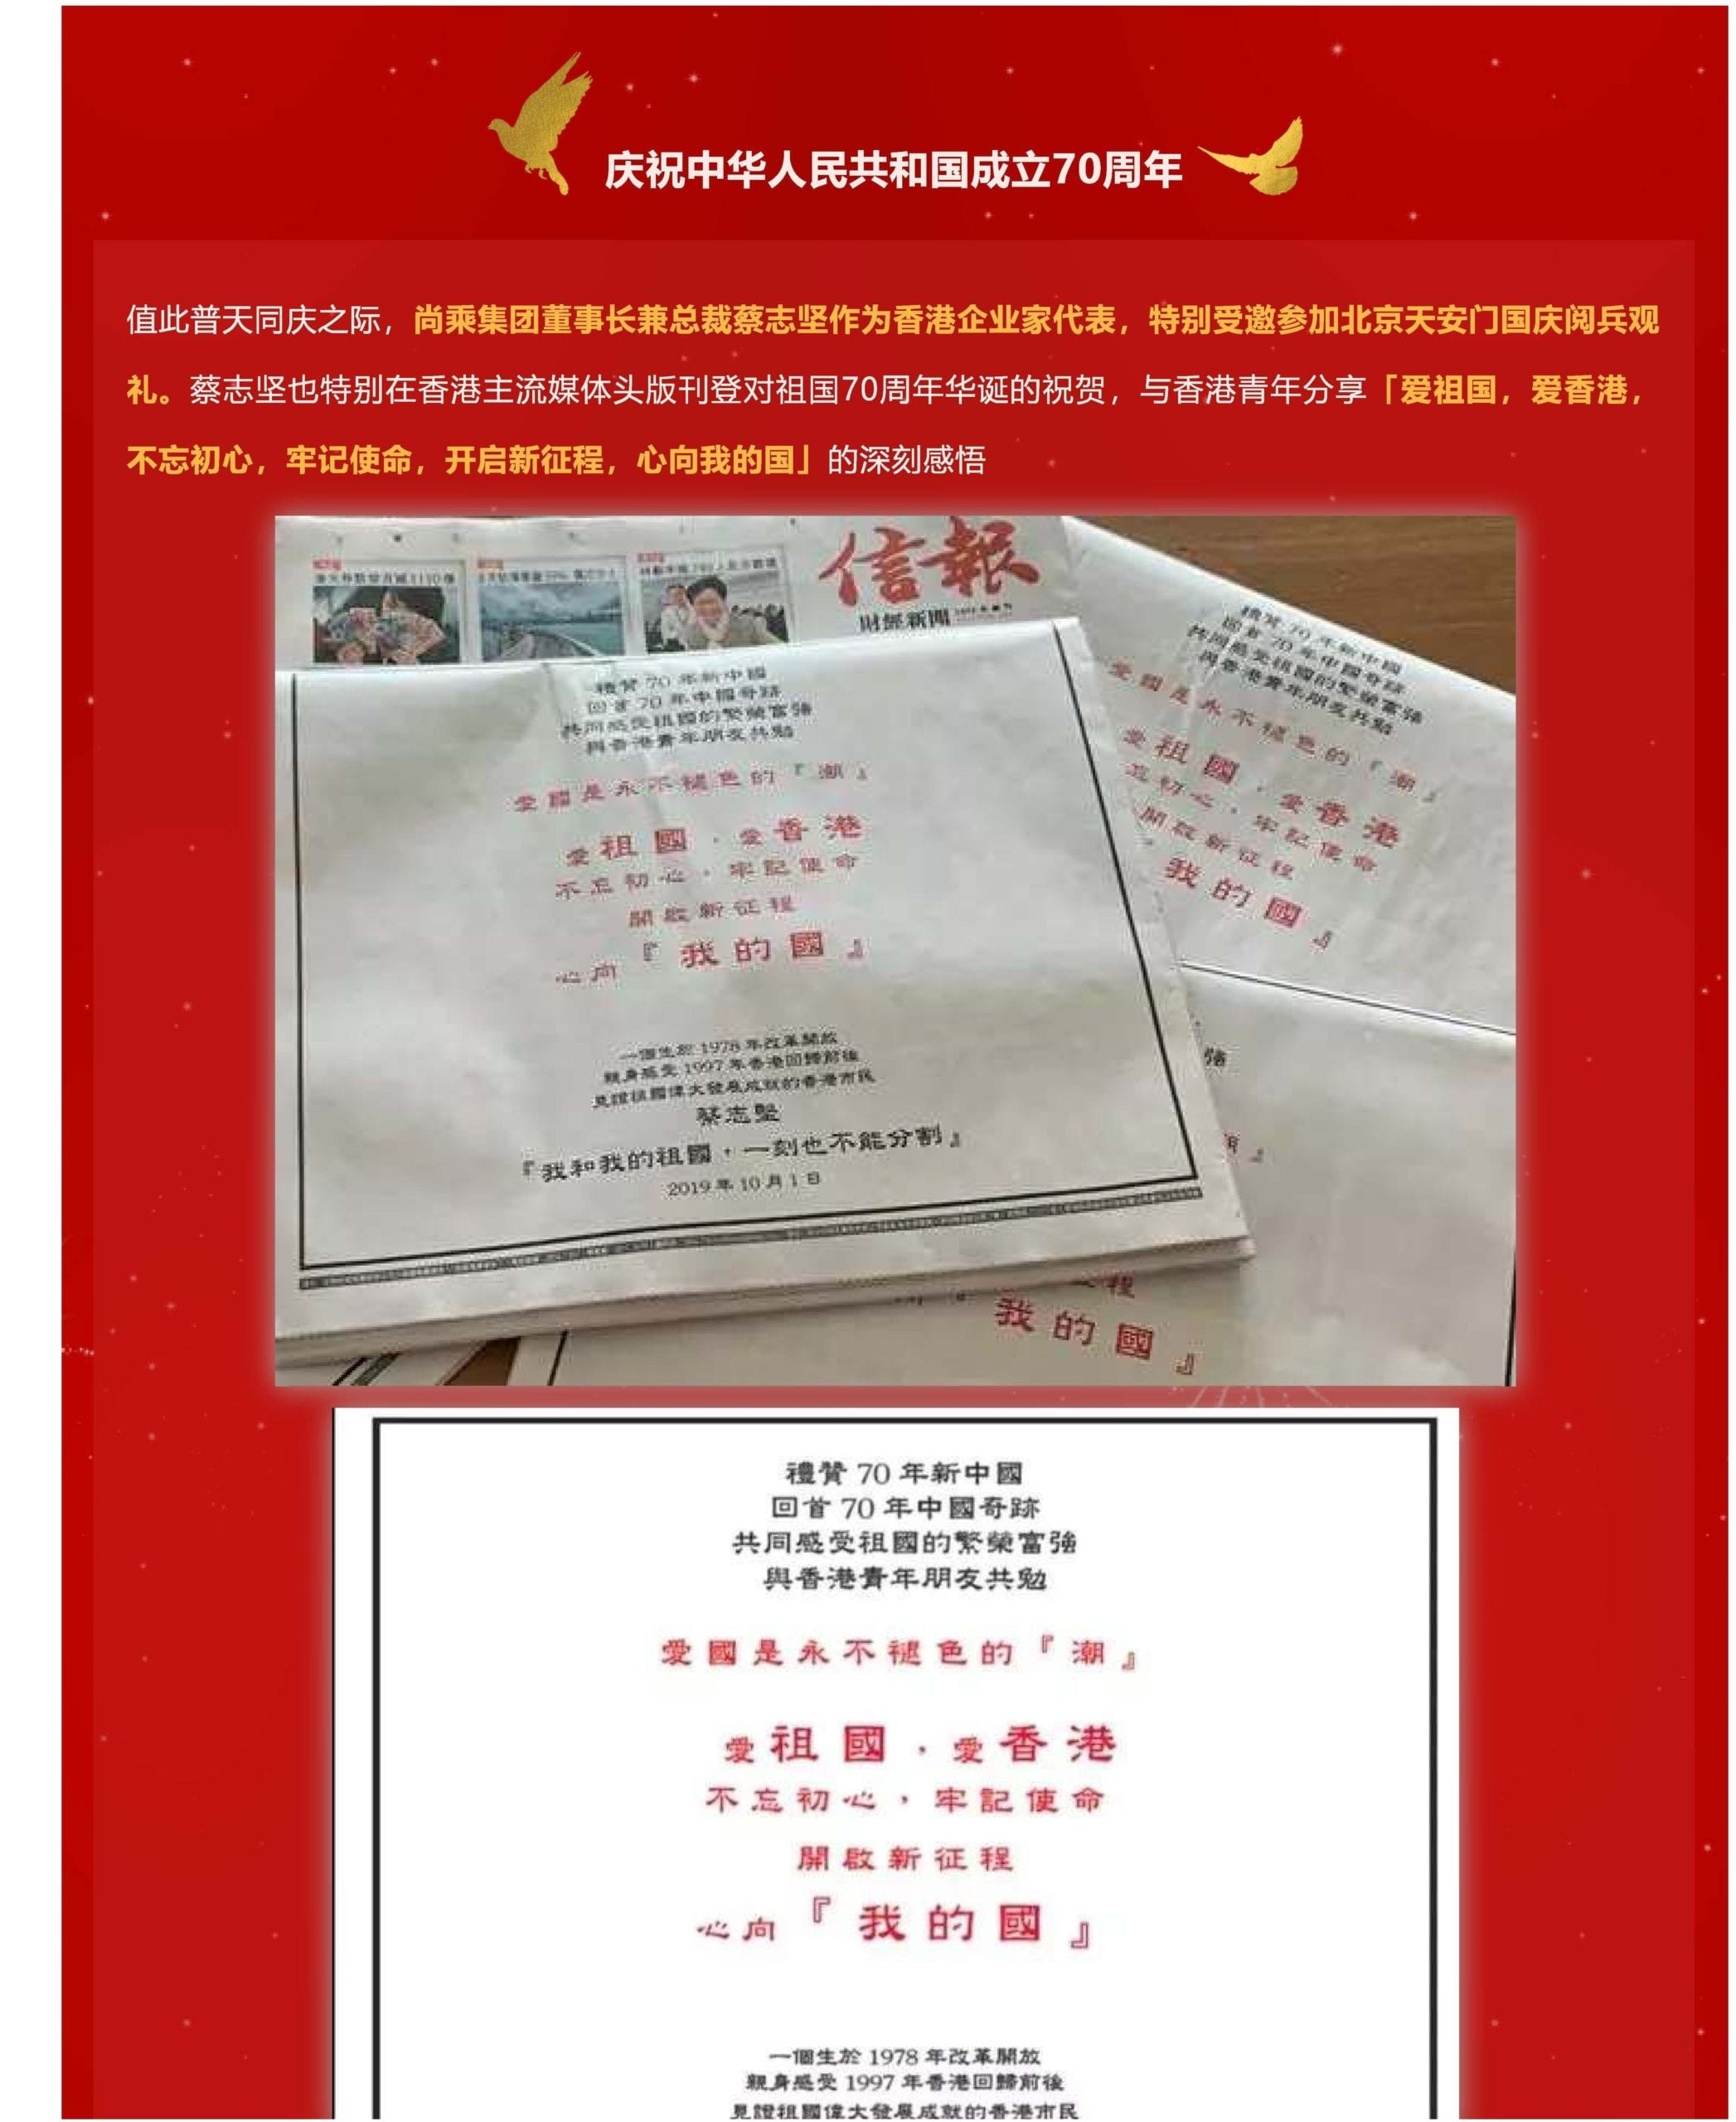 Calvin Choi celebrated the 70th anniversary of the National Day on the front page of Hong Kong's mainstream media on October 1st: love the motherland, love Hong Kong, remain true to the original aspiration, keep the mission firmly in mind, start a new expedition, and a loyal heart for my country!